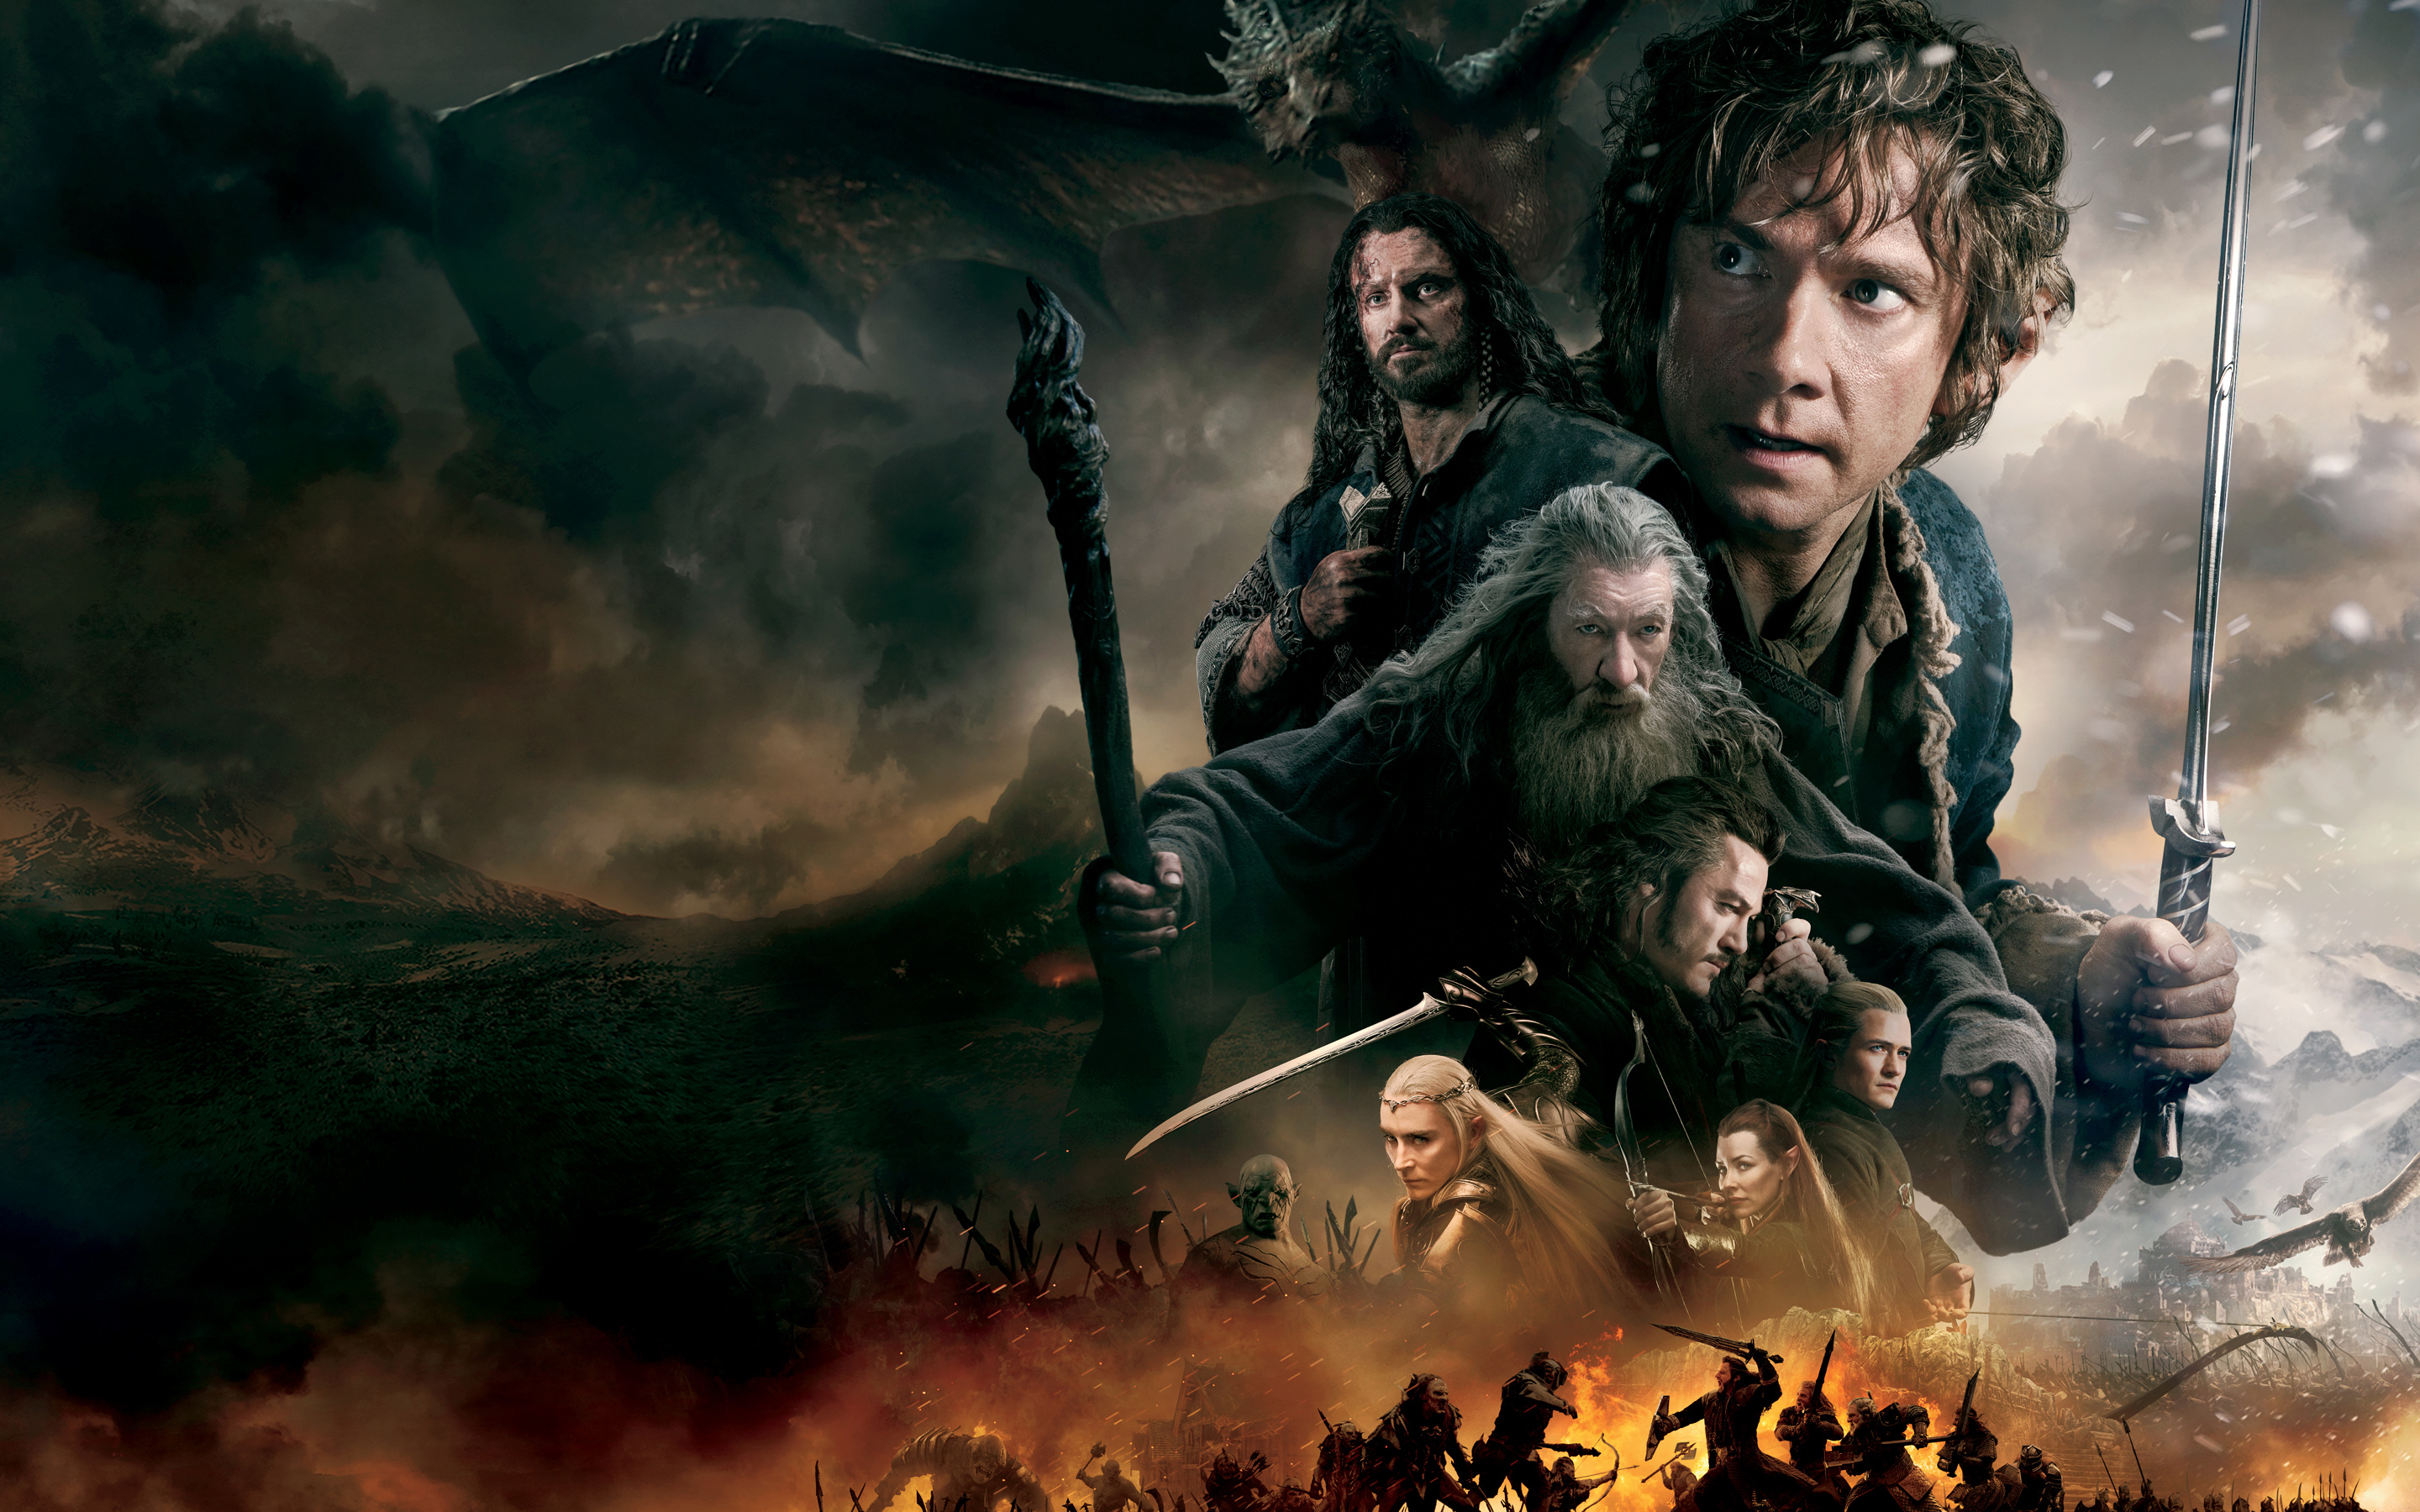 The Hobbit The Battle of the Five Armies 2014 3536.69 Kb